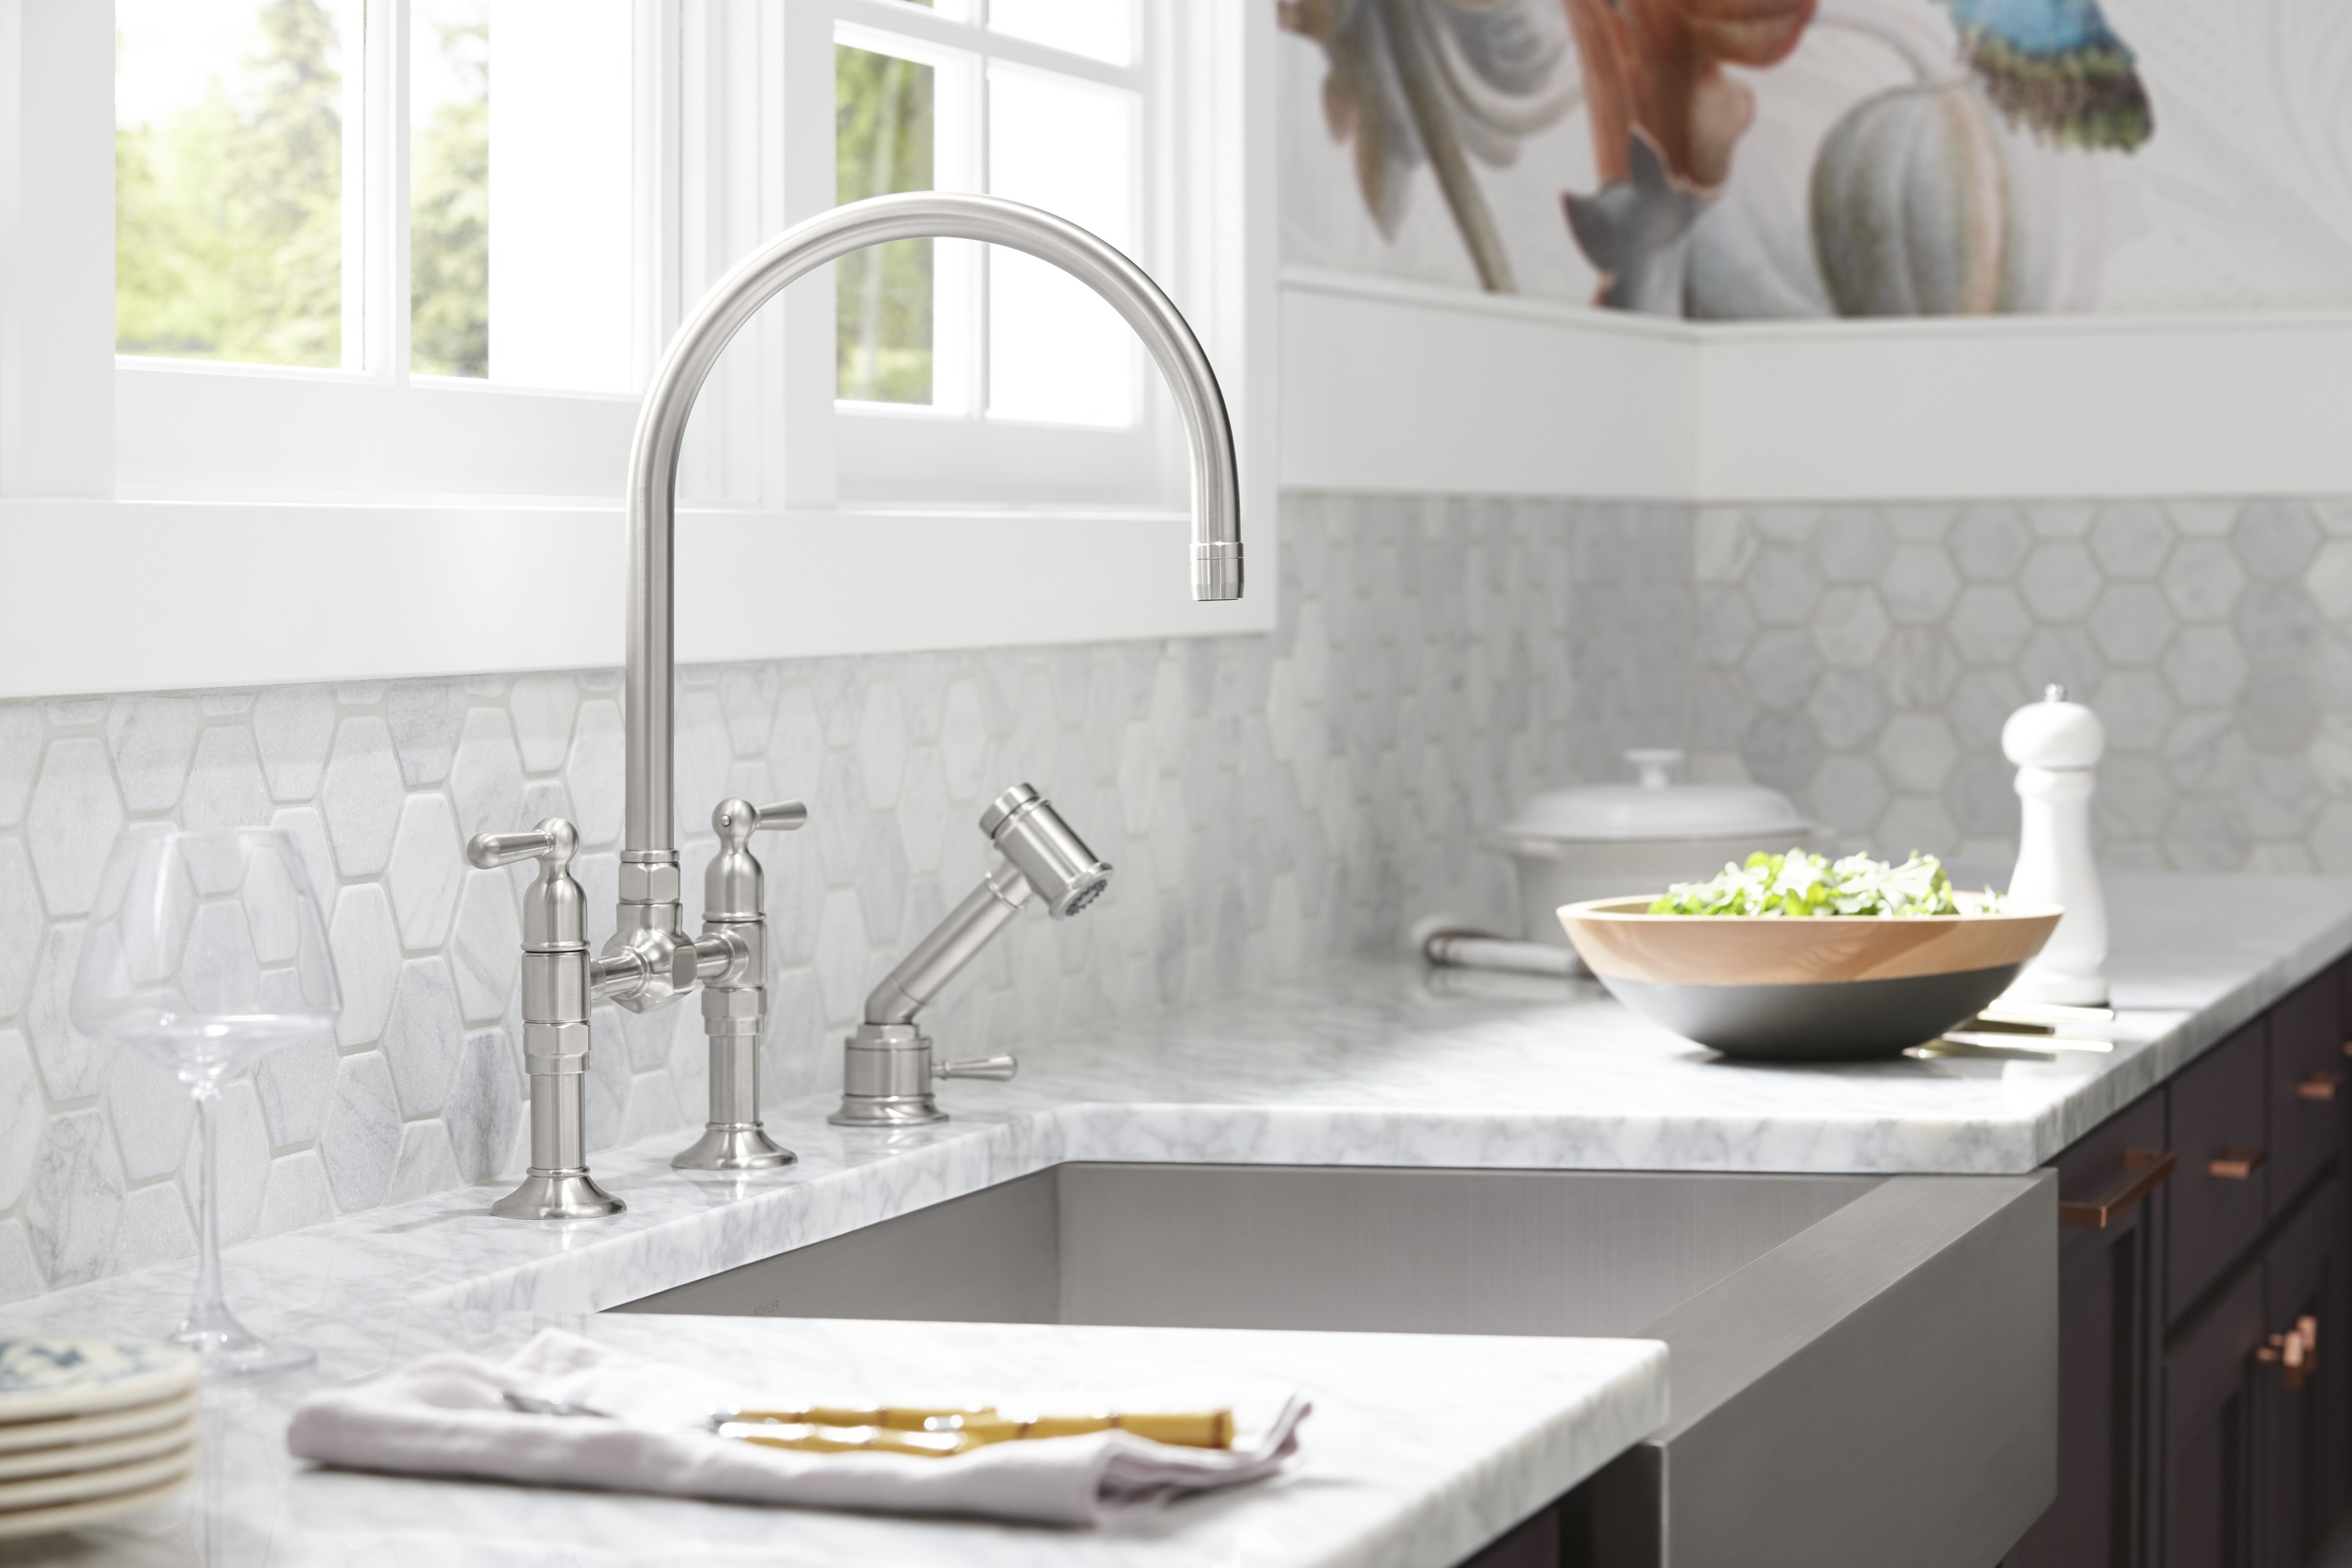 HiRise™ bridge kitchen faucet     HiRise sidespray     A deck-mount bridge faucet with a high, fully rotating gooseneck swing spout allows you to easily fit larger dishes underneath for cleaning.